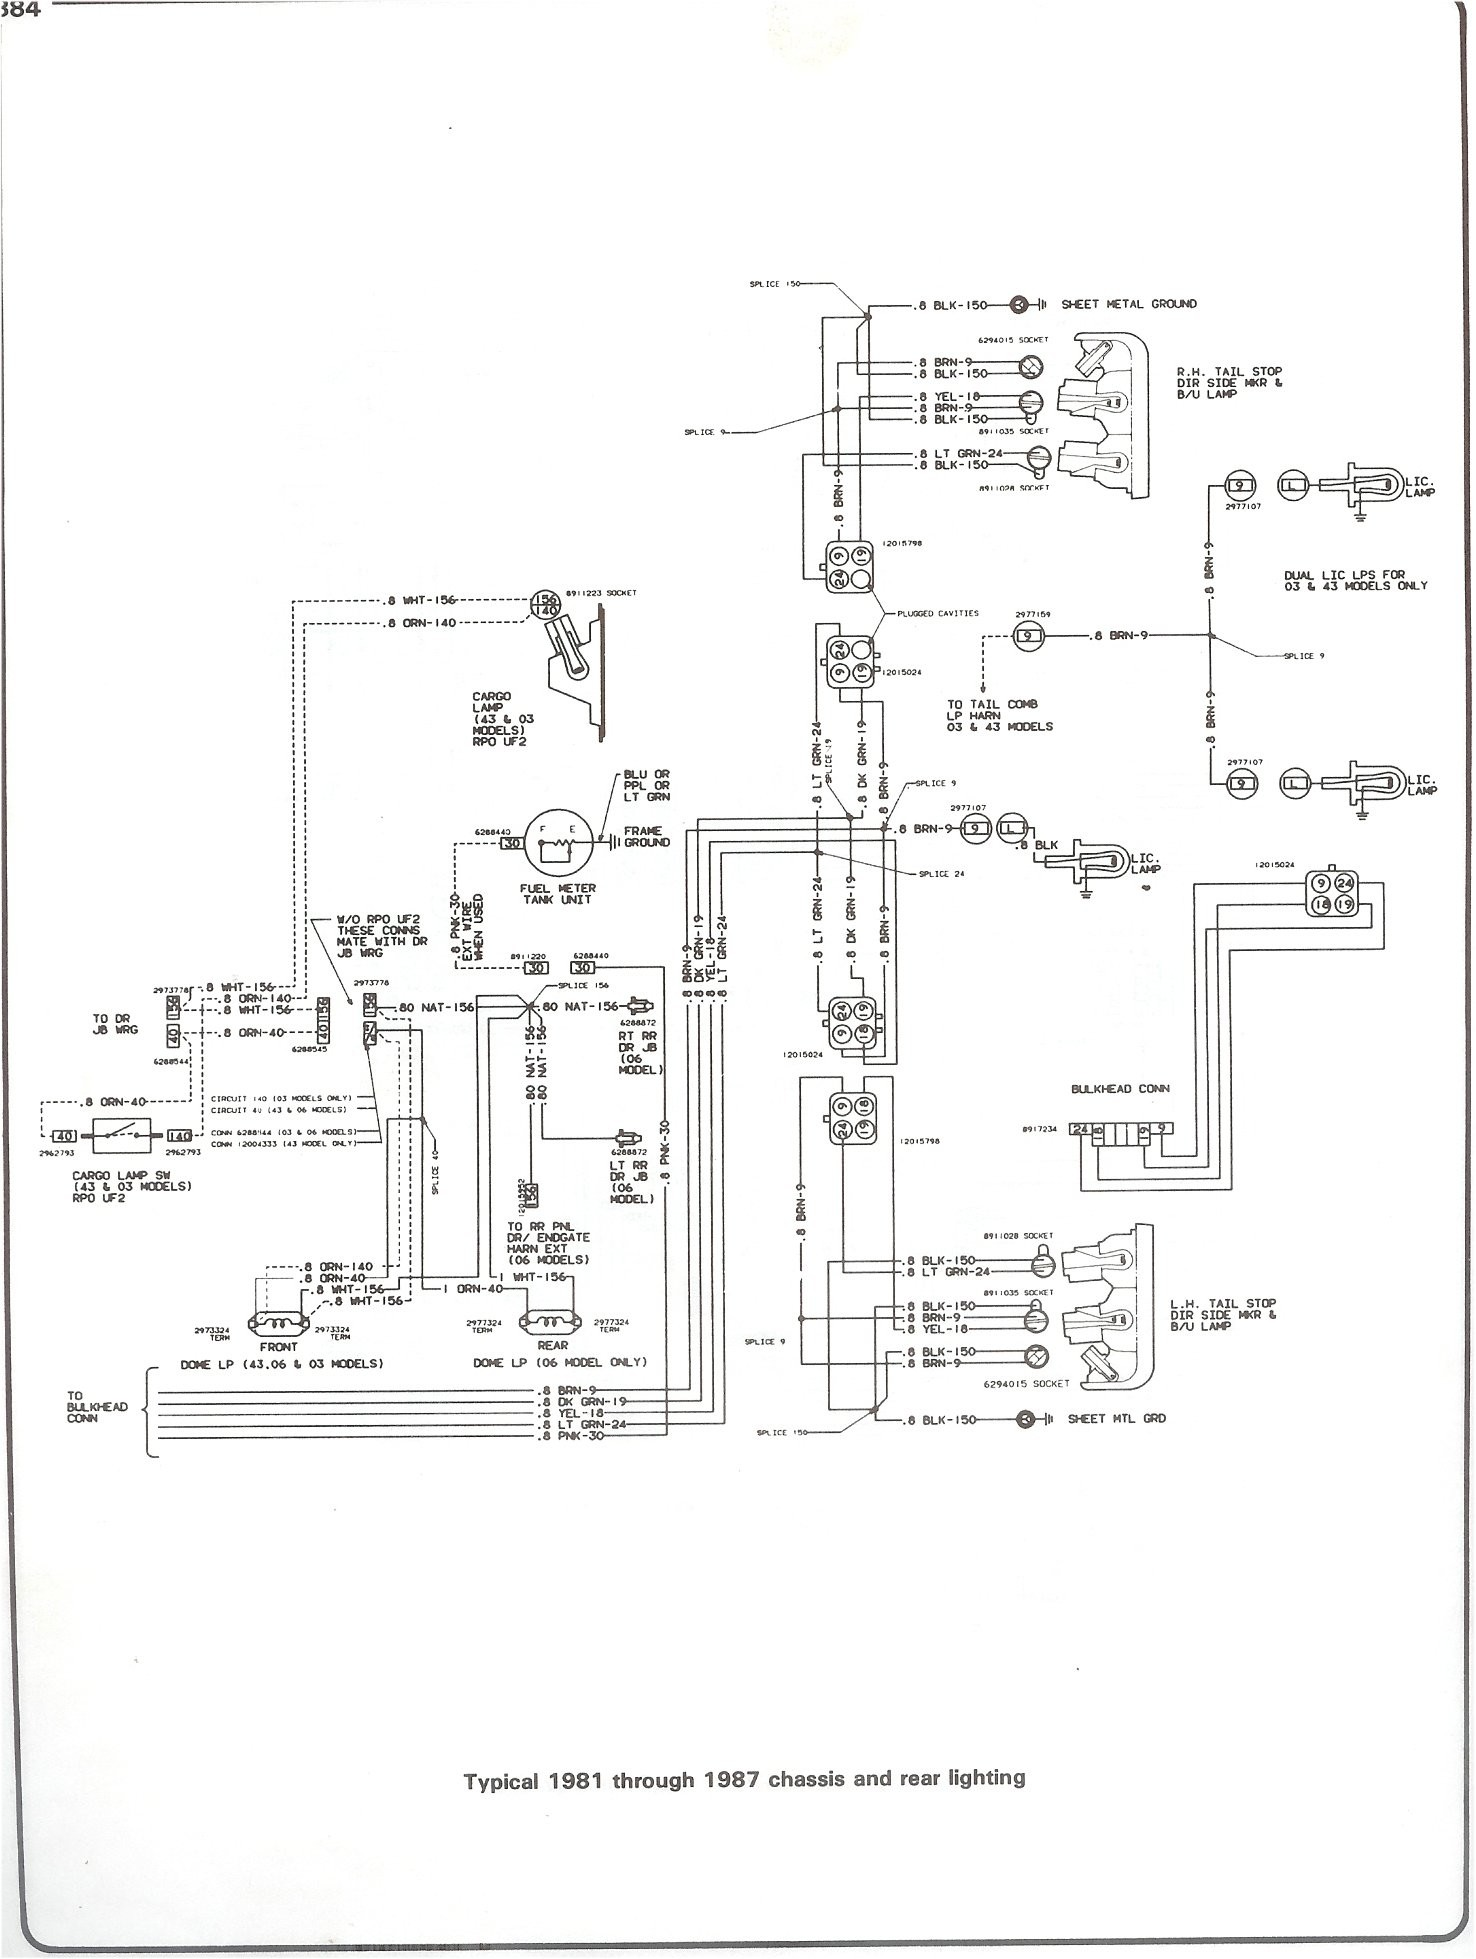 wiring diagram for 1986 chevy truck wiring diagram 1986 Jaguar Xj6 Wiring Diagram 87 chevy truck fuse box auto electrical wiring diagram wiring diagram for 1986